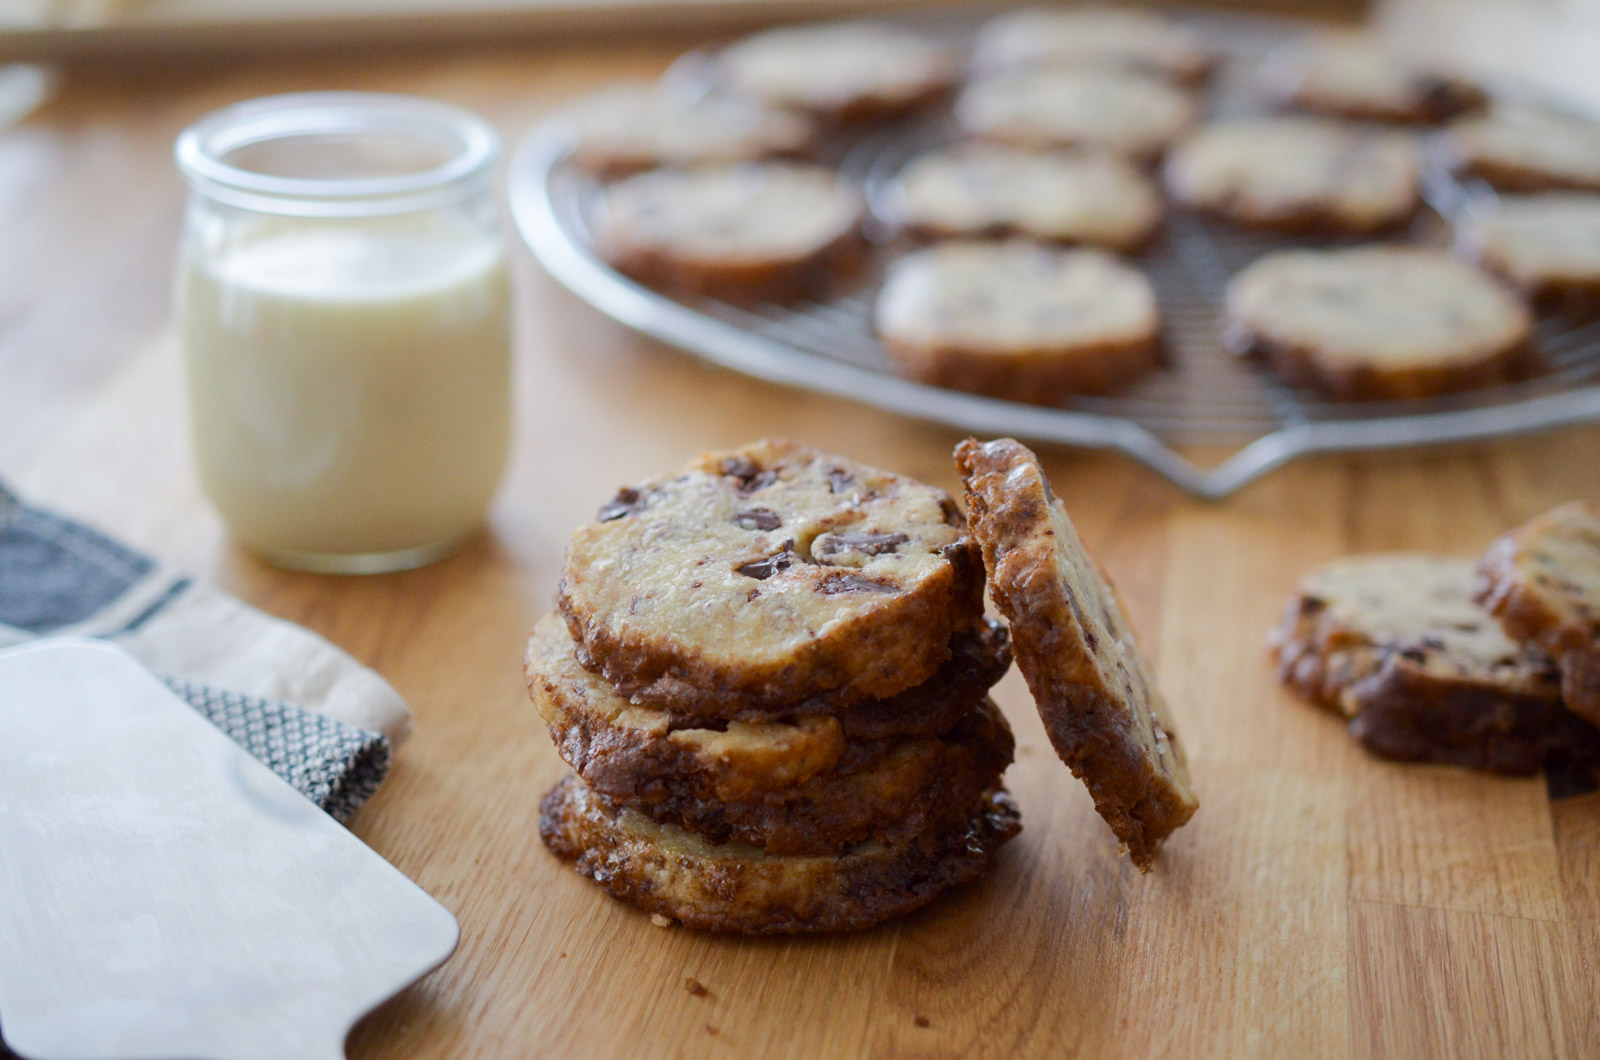 Salted Butter and Chocolate Chunk Shortbread - Les cookies façon Alison Roman